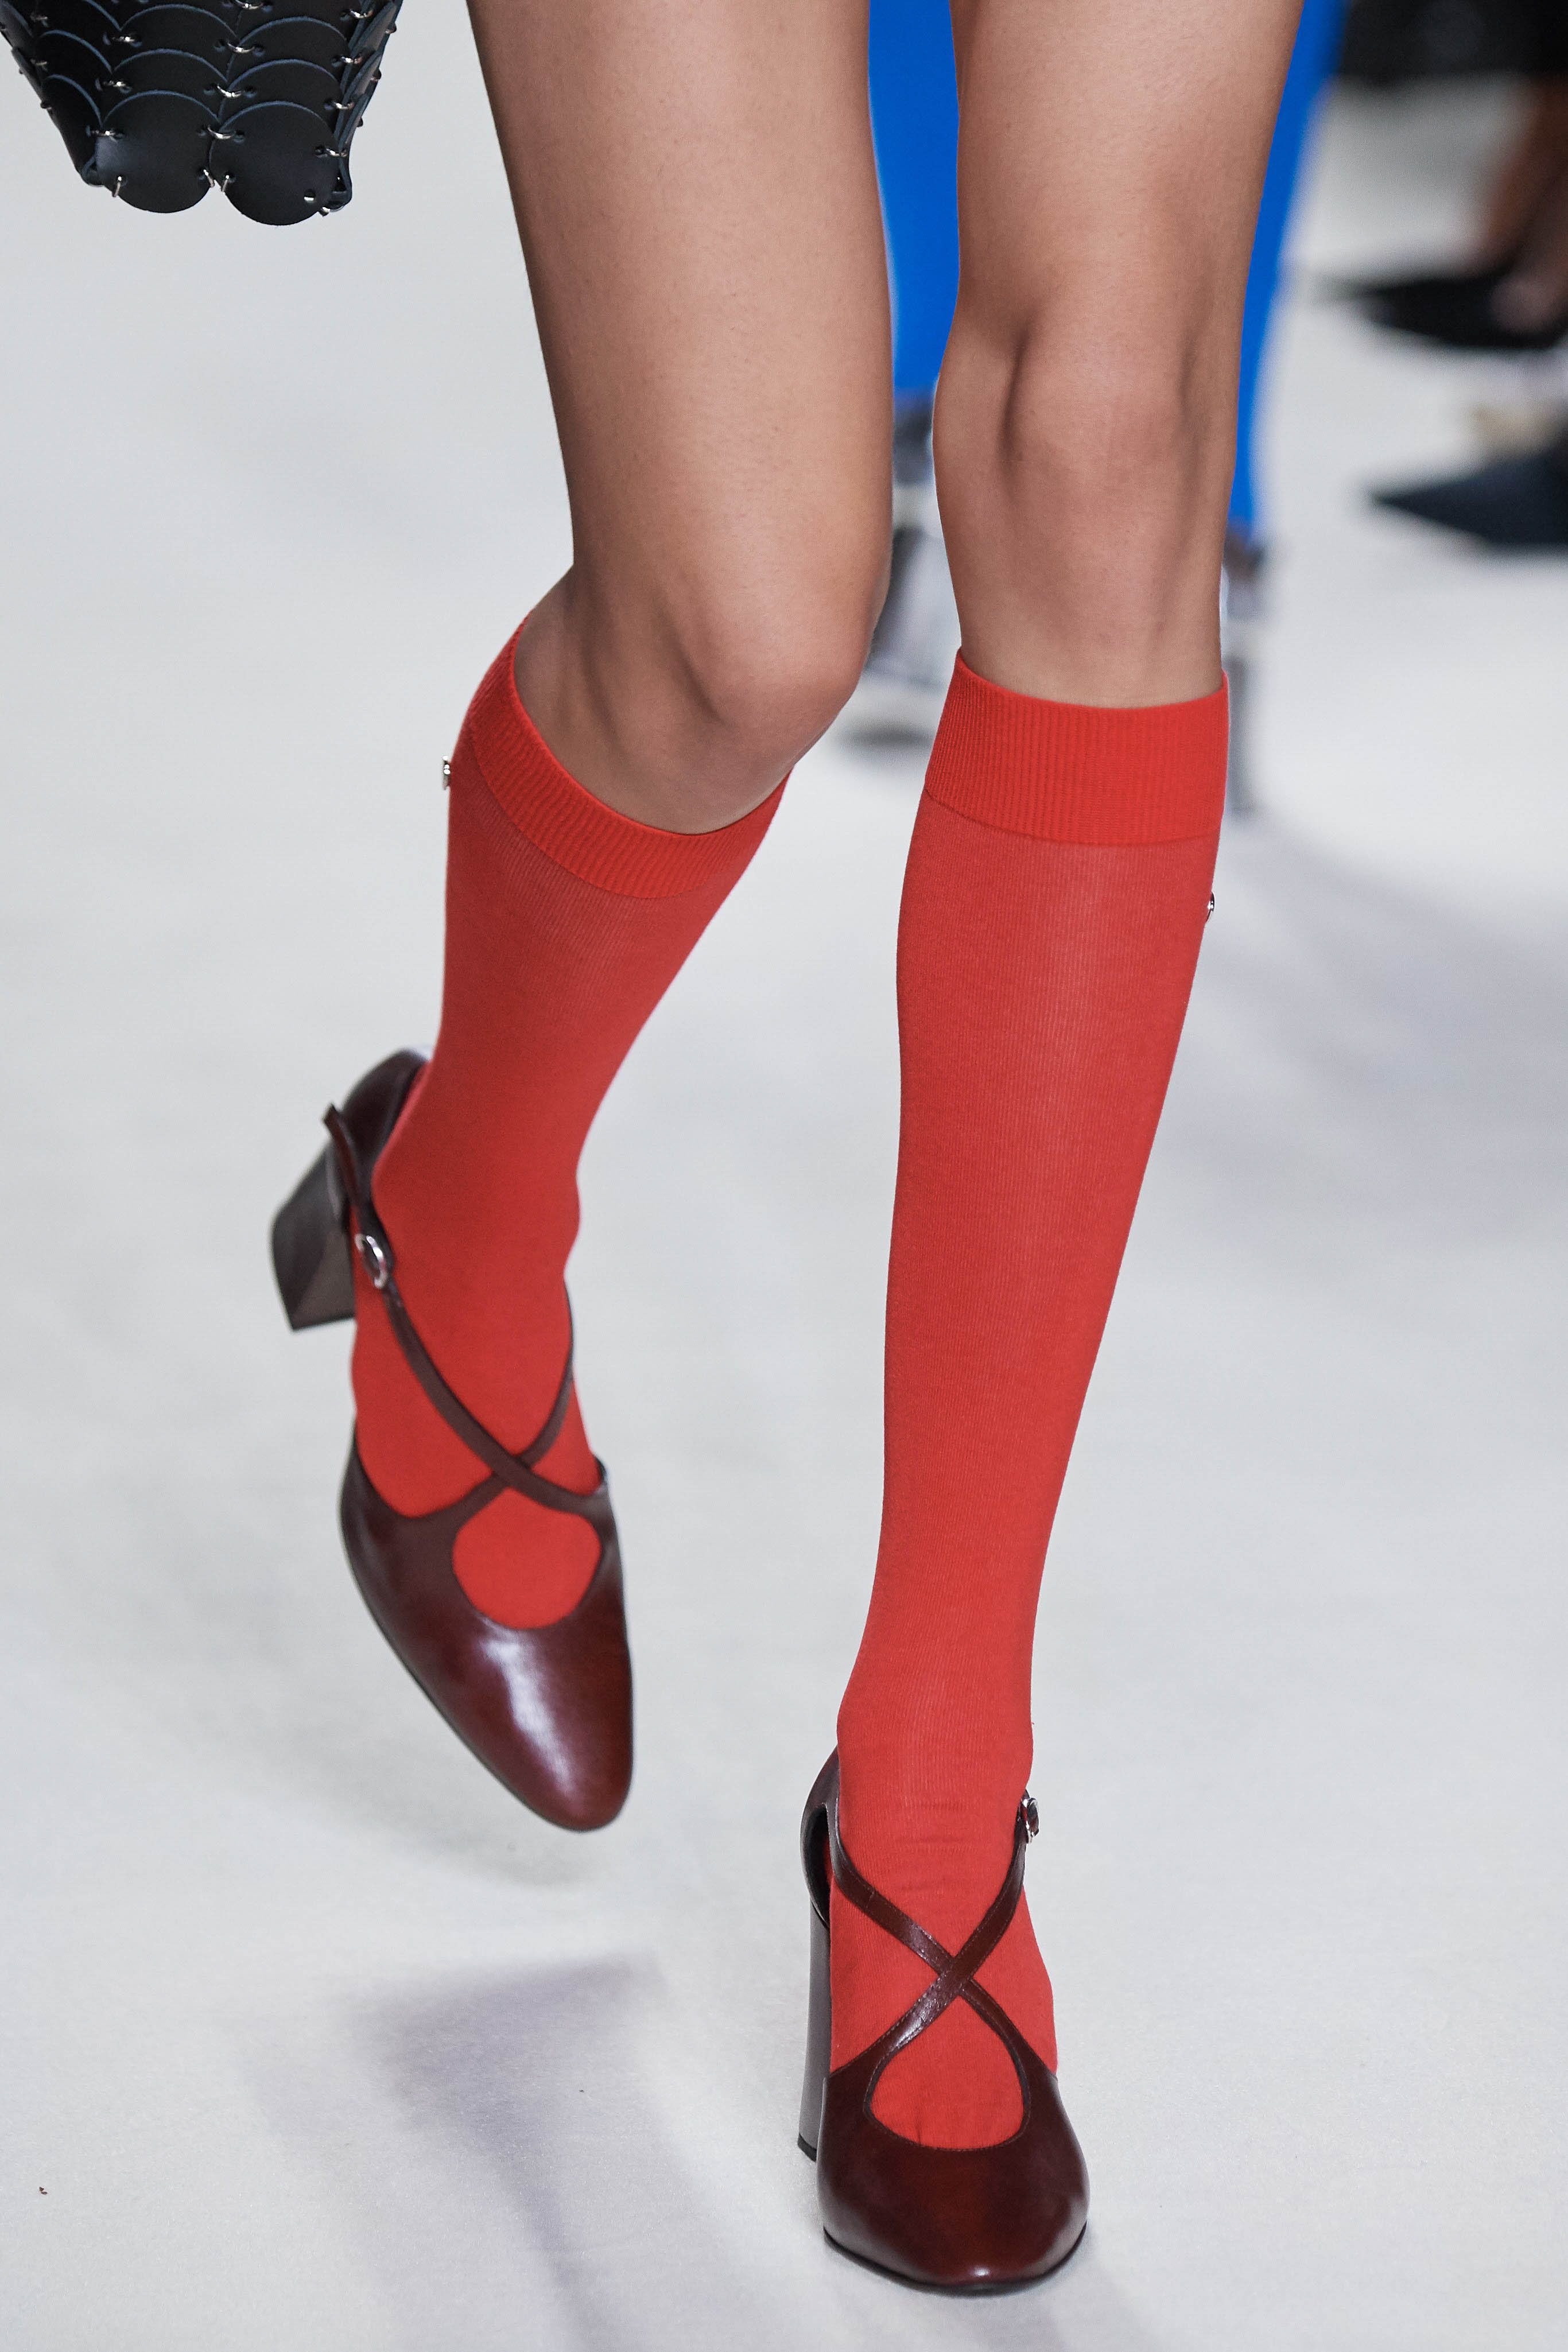 Paco Rabanne Spring Summer 2020 SS2020 trends runway coverage Ready To Wear Vogue details shoes socks